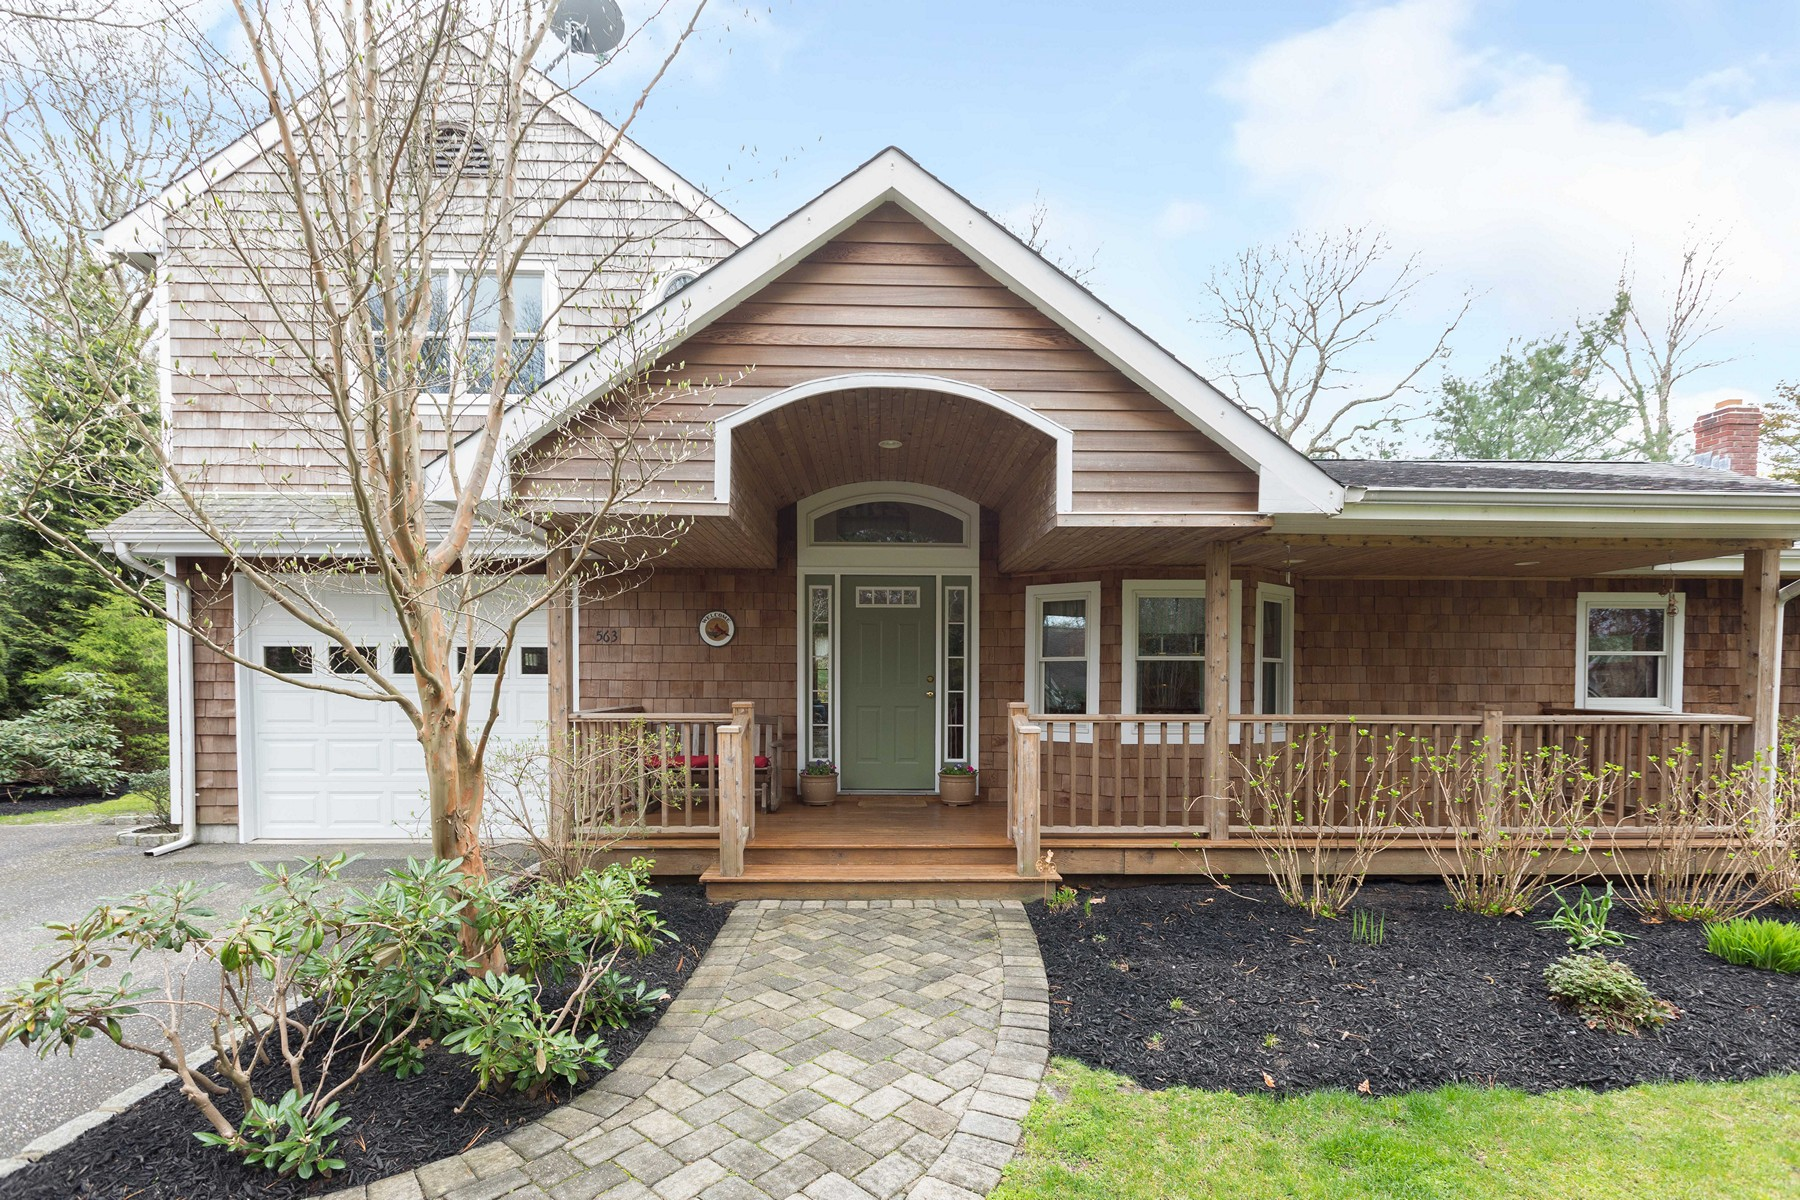 Single Family Homes for Sale at Westhampton Bch 563 Montauk Hwy Westhampton Beach, New York 11978 United States